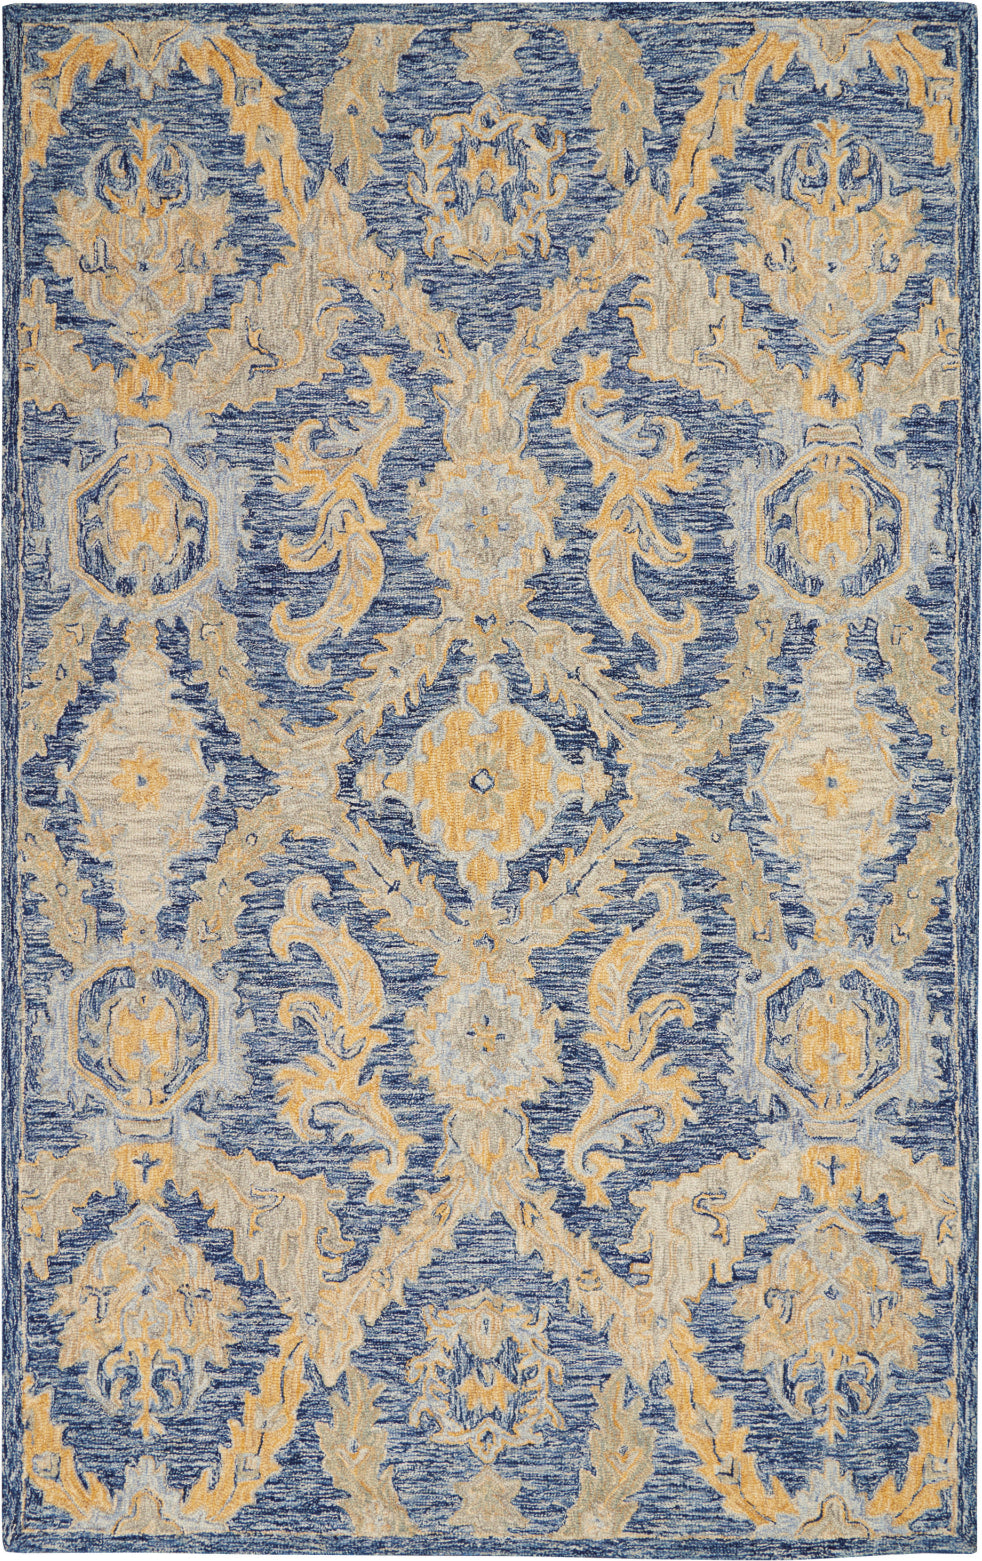 Azura AZM03 Navy Blue Area Rug by Nourison main image